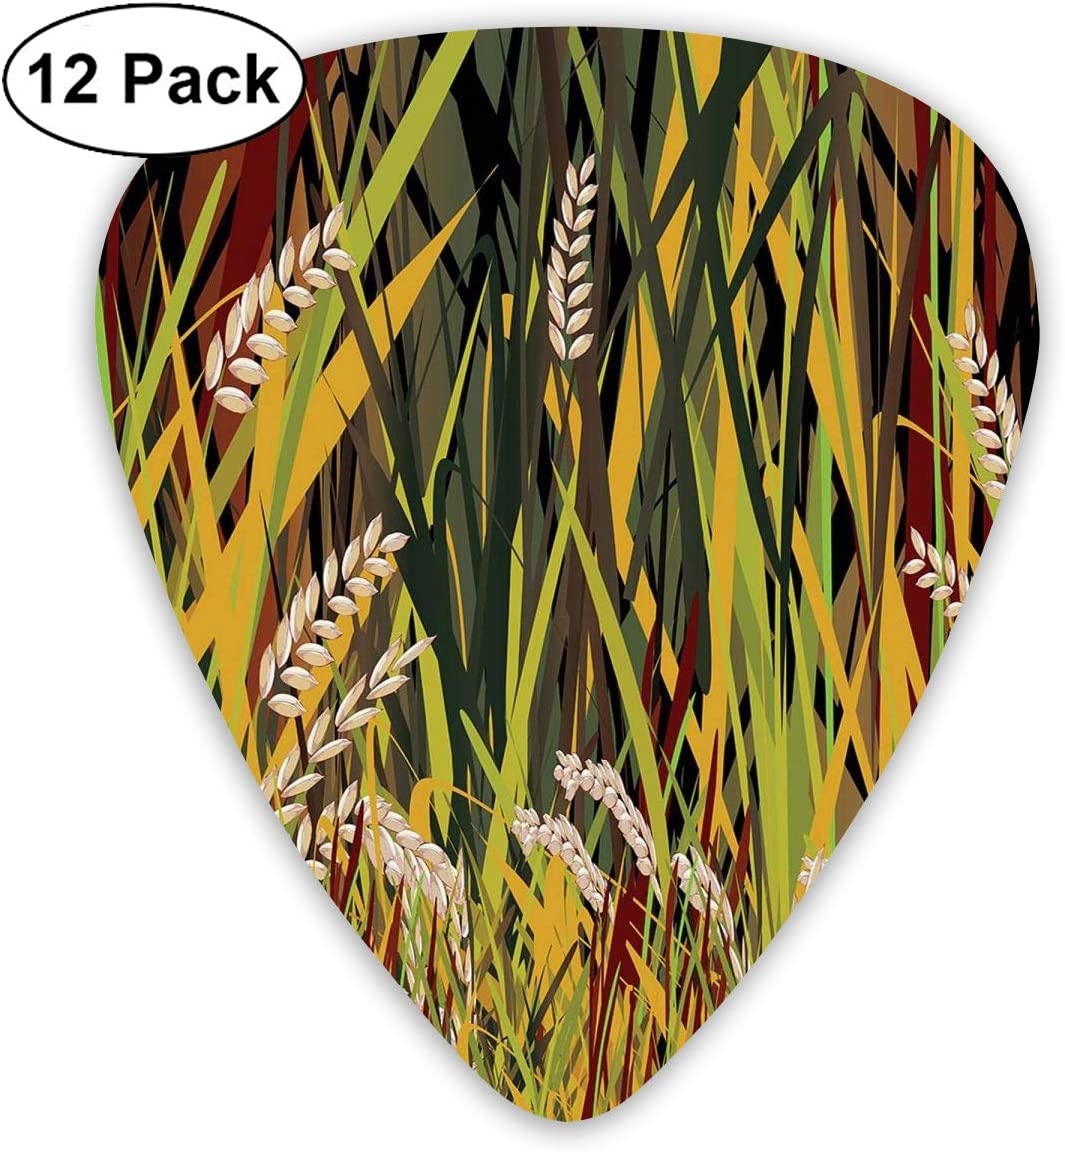 Guitar Picks12pcs Plectrum (0.46mm-0.96mm), Reeds Dried Leaves Wheat River Wild Plant Forest Farm Country Life Art Print Image,For Your Guitar or Ukulele